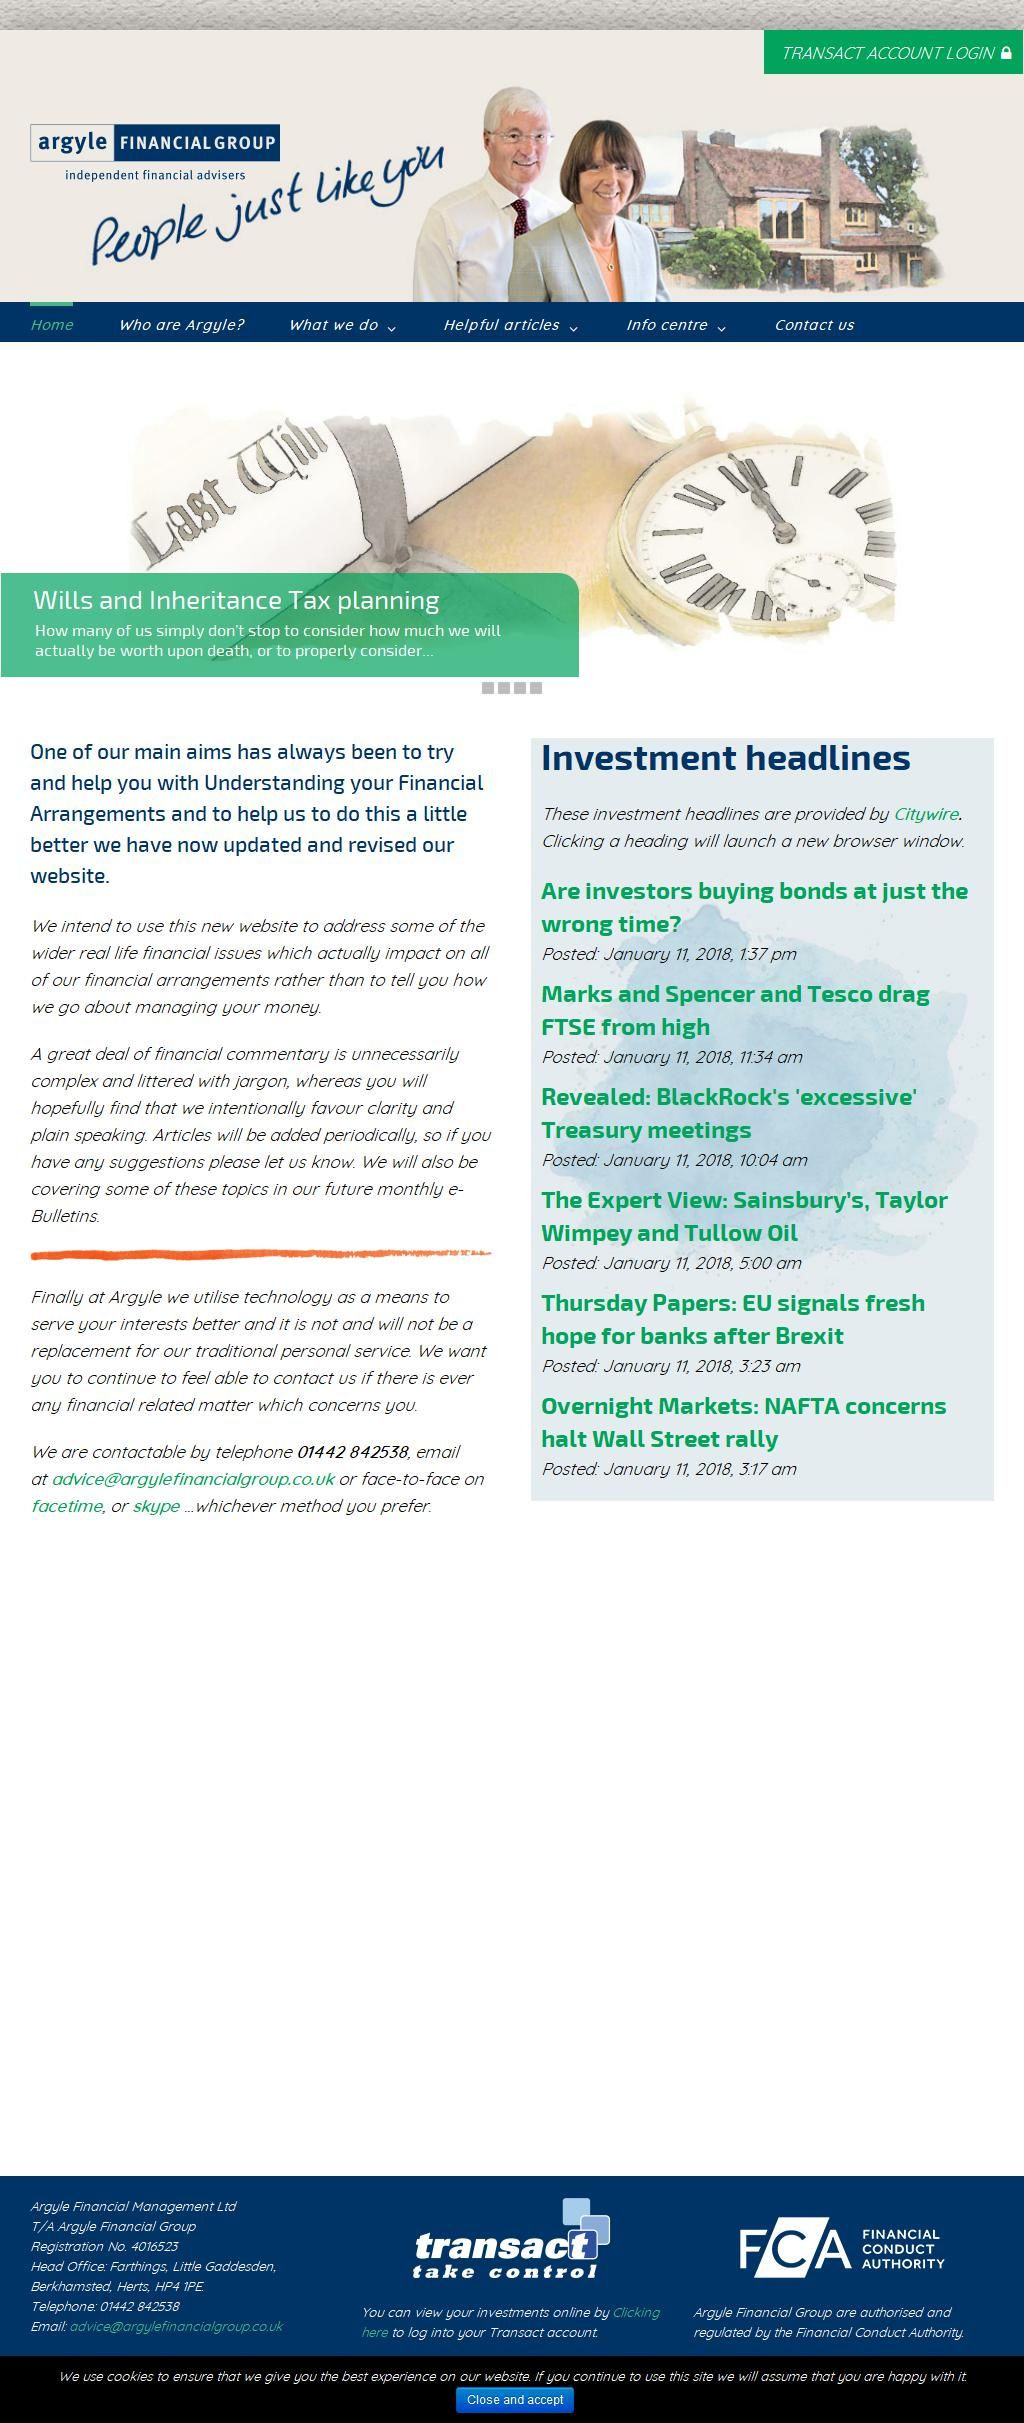 Argyle Financial Group Financial Advisers (Independents